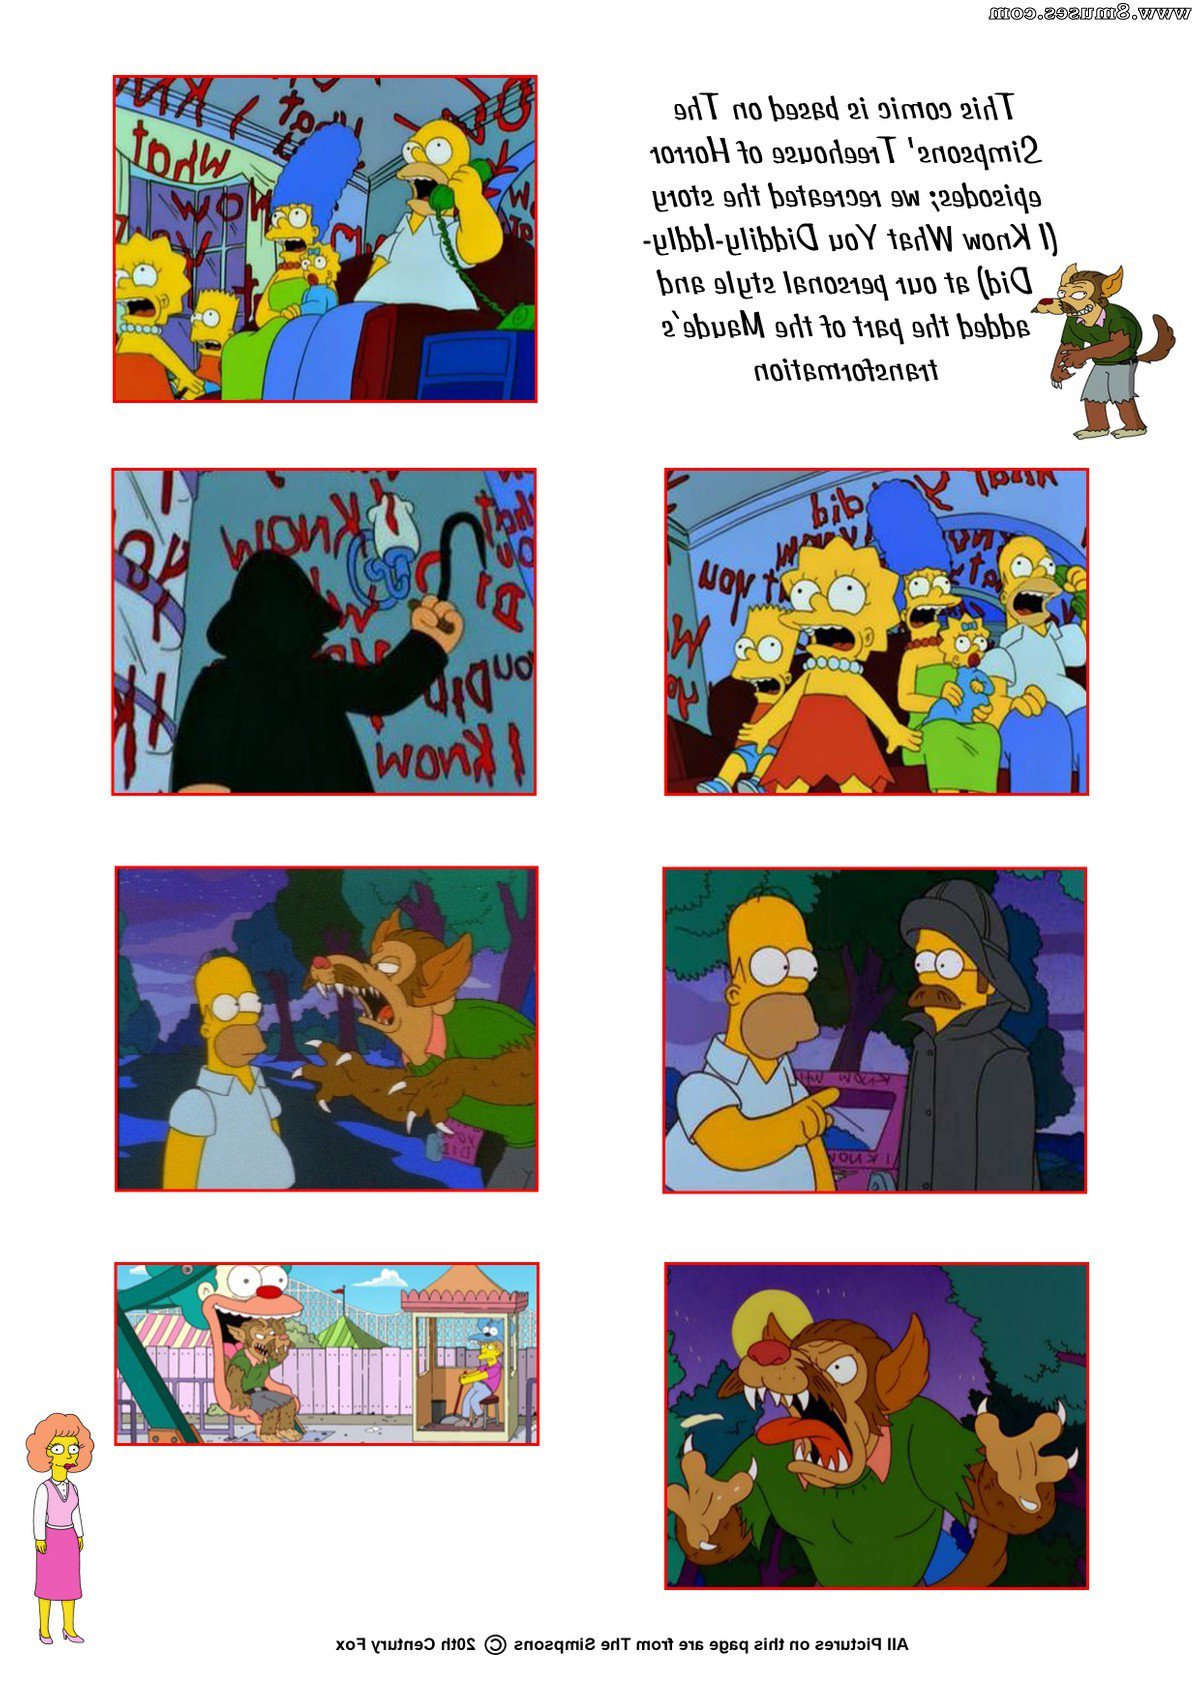 Locofuria-Comics/Treehouse-of-Horror/Issue-2 Treehouse_of_Horror_-_Issue_2_29.jpg